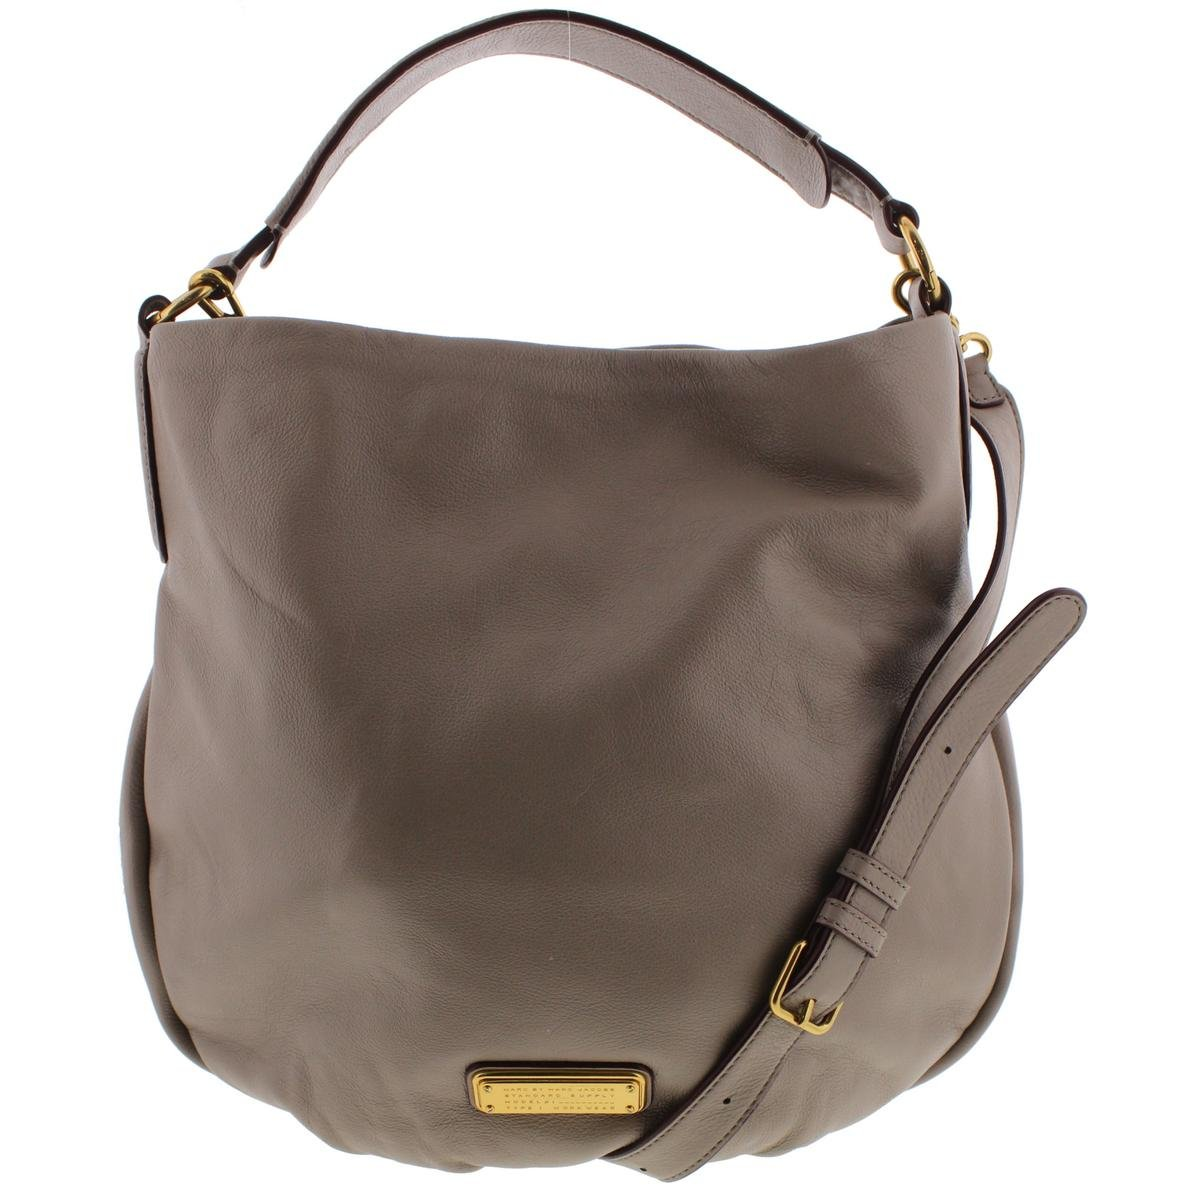 Marc by Marc Jacobs New Q Hillier Convertible Hobo, Cement, One Size